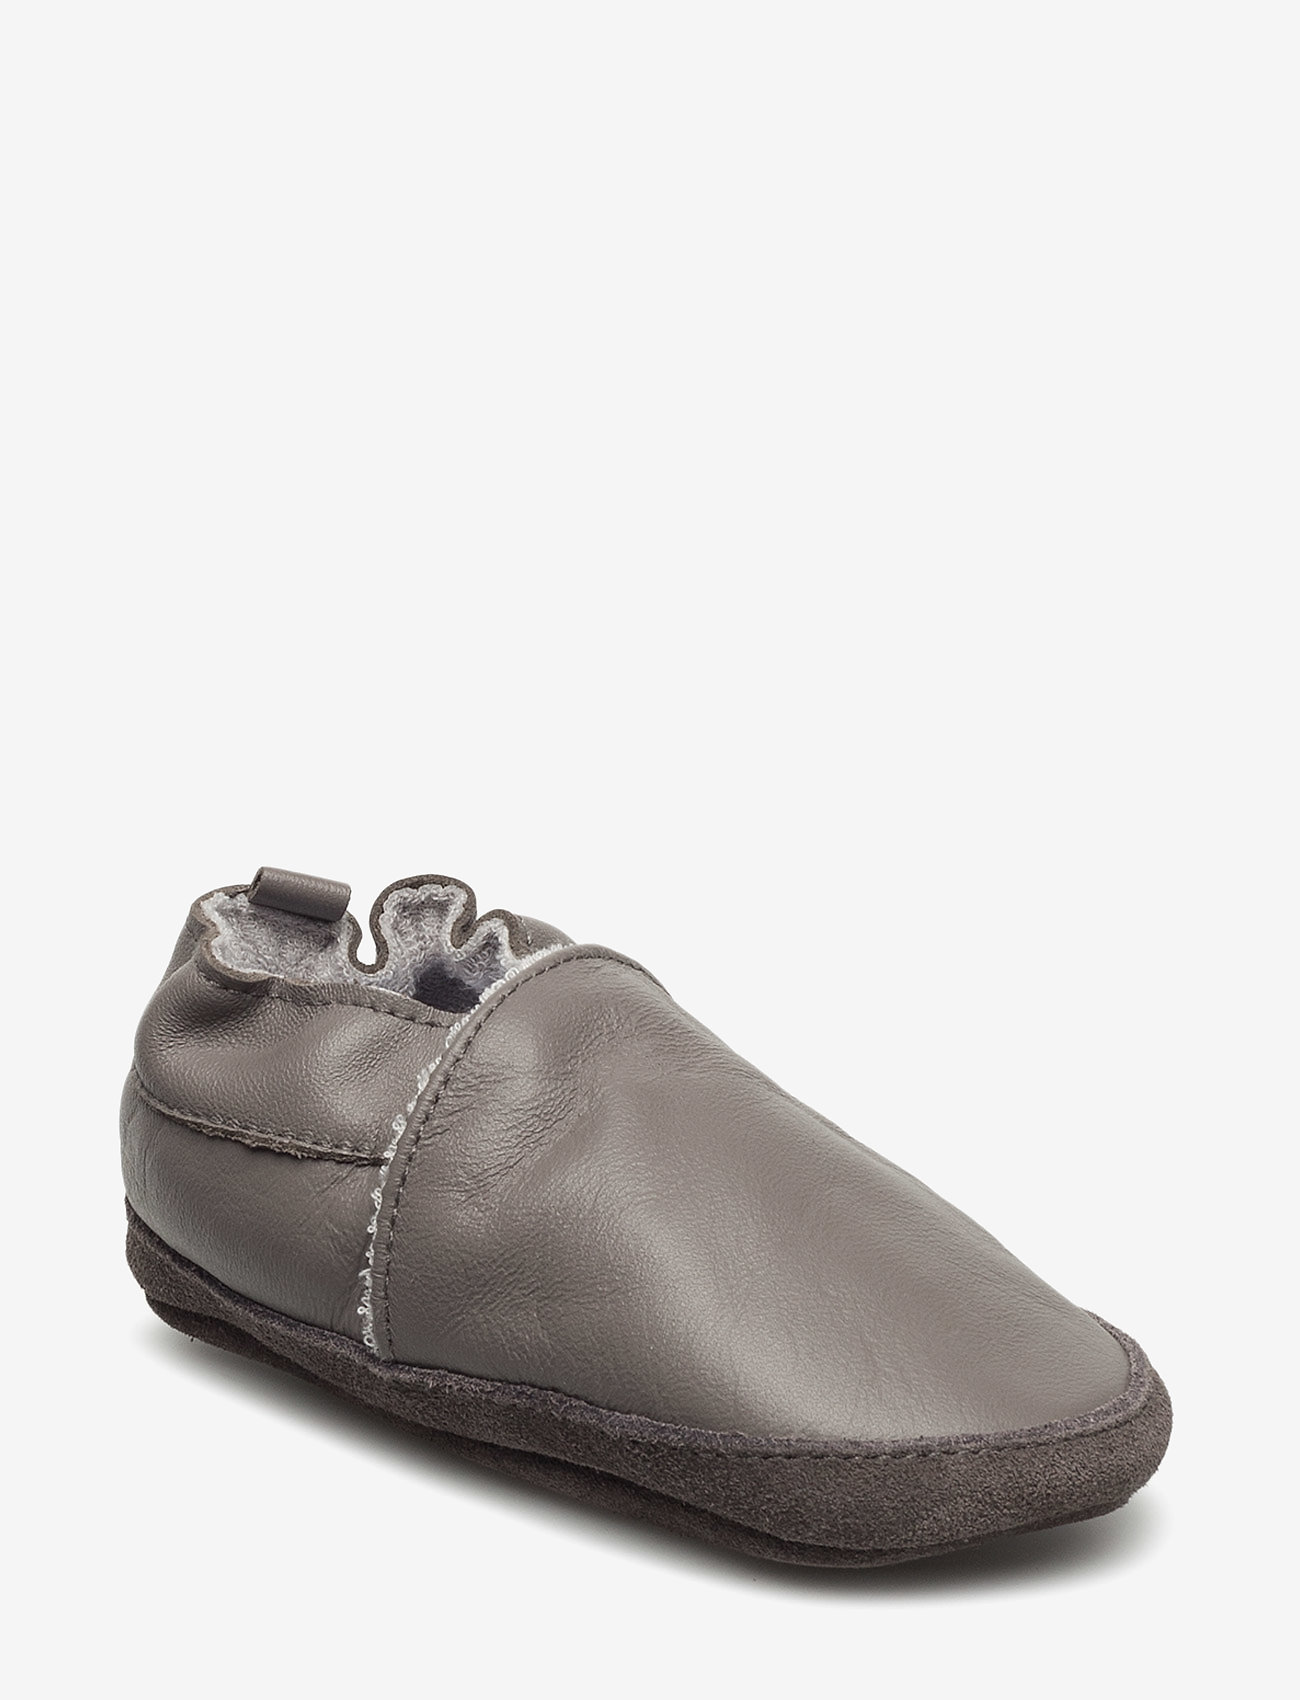 Melton - Leather shoe - Loafer - schuhe - 150/darkgrey - 0